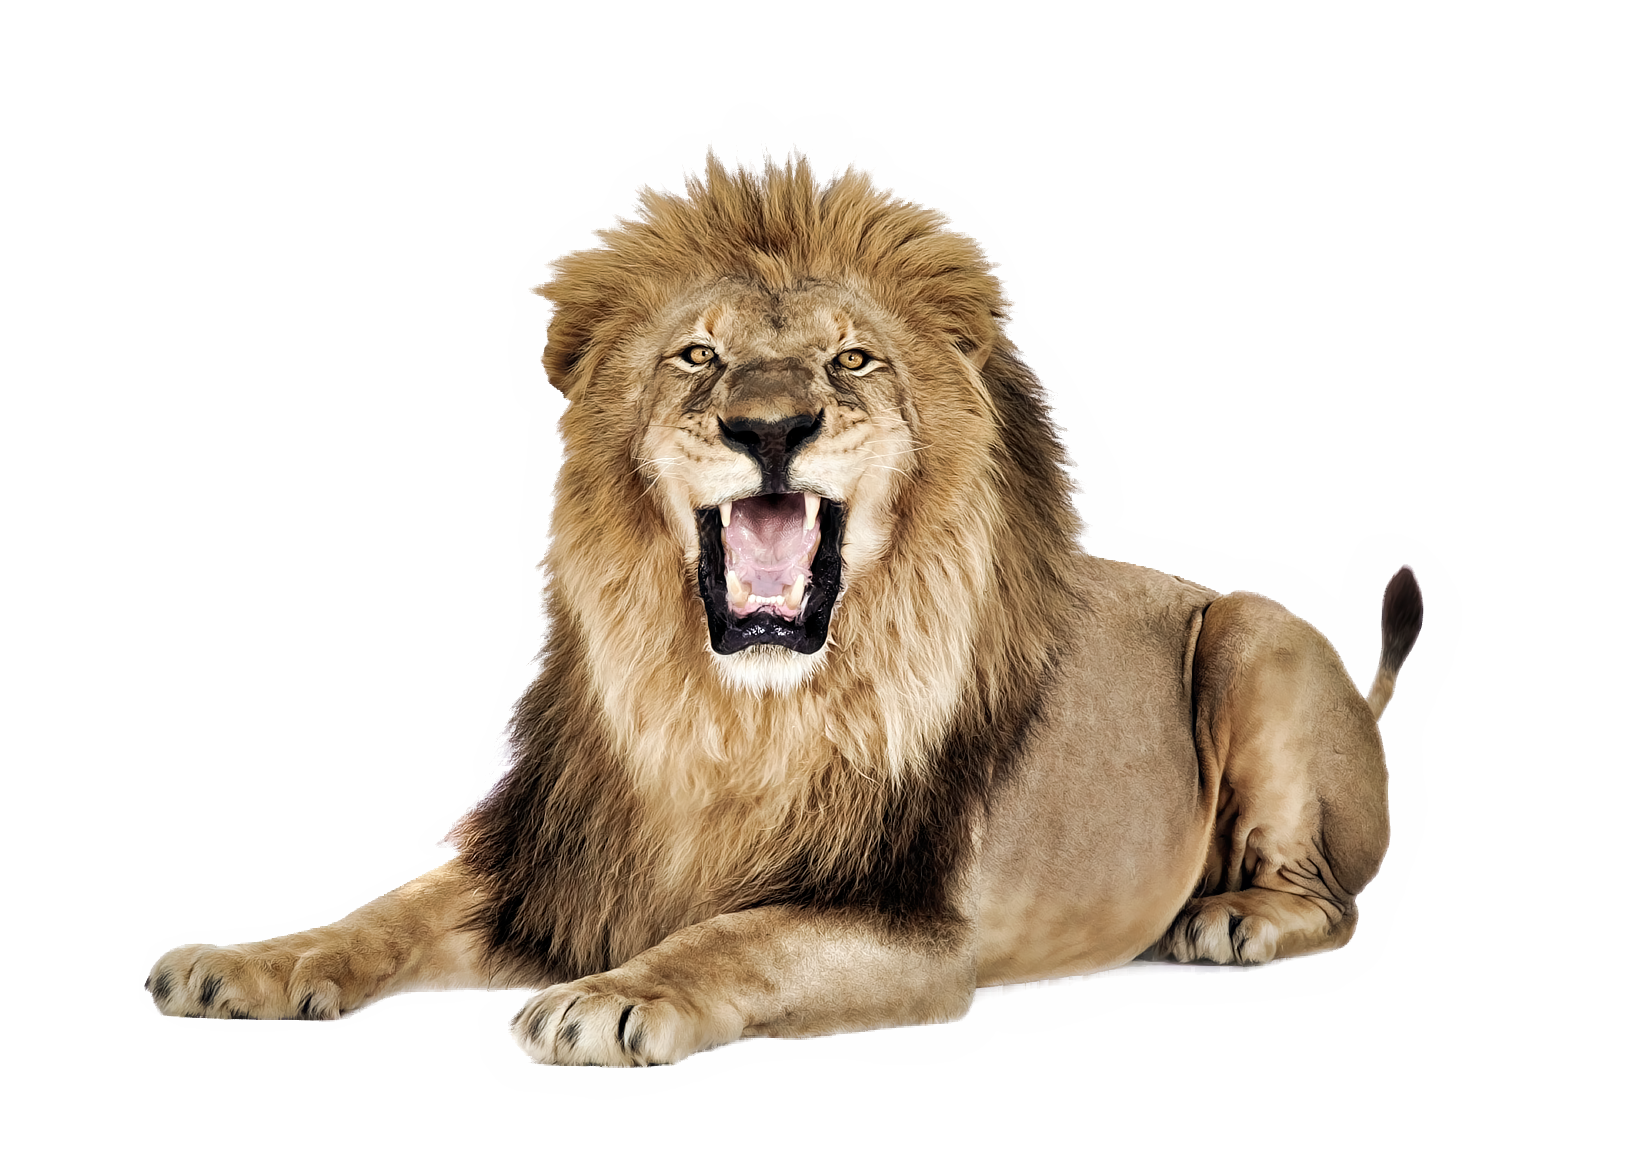 Lion png. Images free download lions